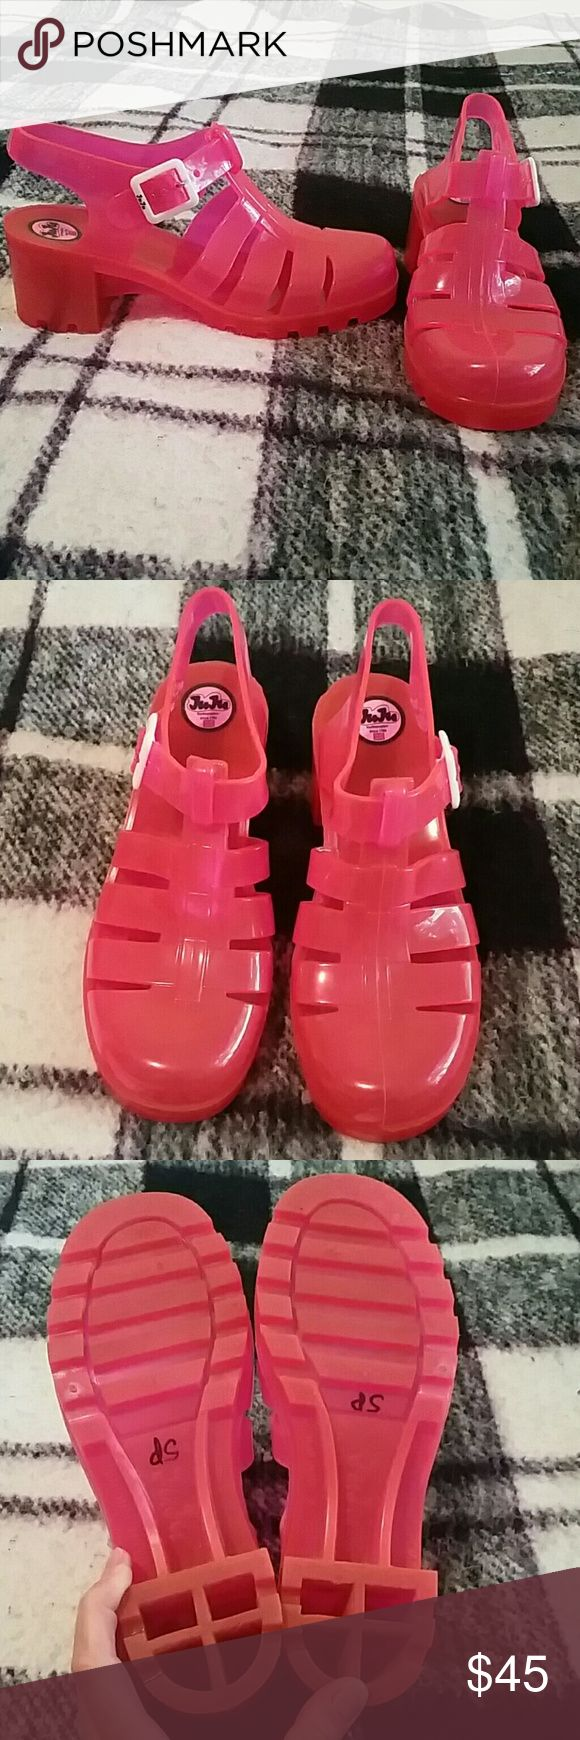 Original JuJu Jellies Hot Pink! Impeccable condition Original JuJu Jellies made in England. UK size 7, I wear a size 8/8.5 and they fit me great. Don't miss out on these super funky cute jellies! Tiny white scuff on the back of the right heel as seen in photo #4, can probably be cleaned or scraped off JuJu Shoes Sandals